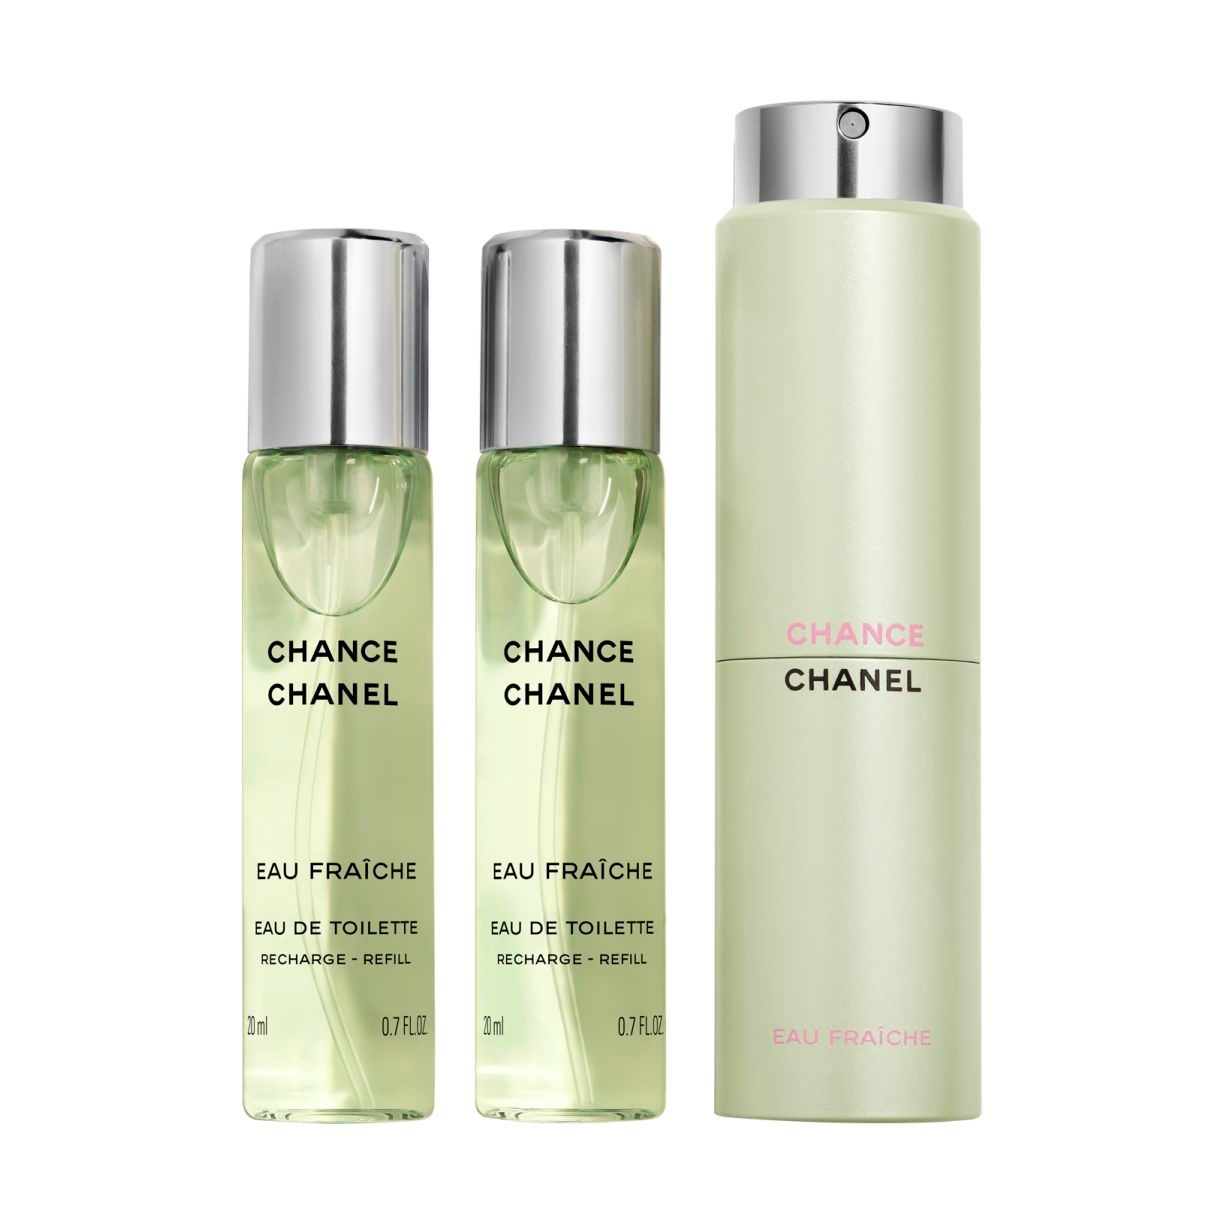 Chance eau fraiche eau de toilette spray chanel for Chance eau fraîche